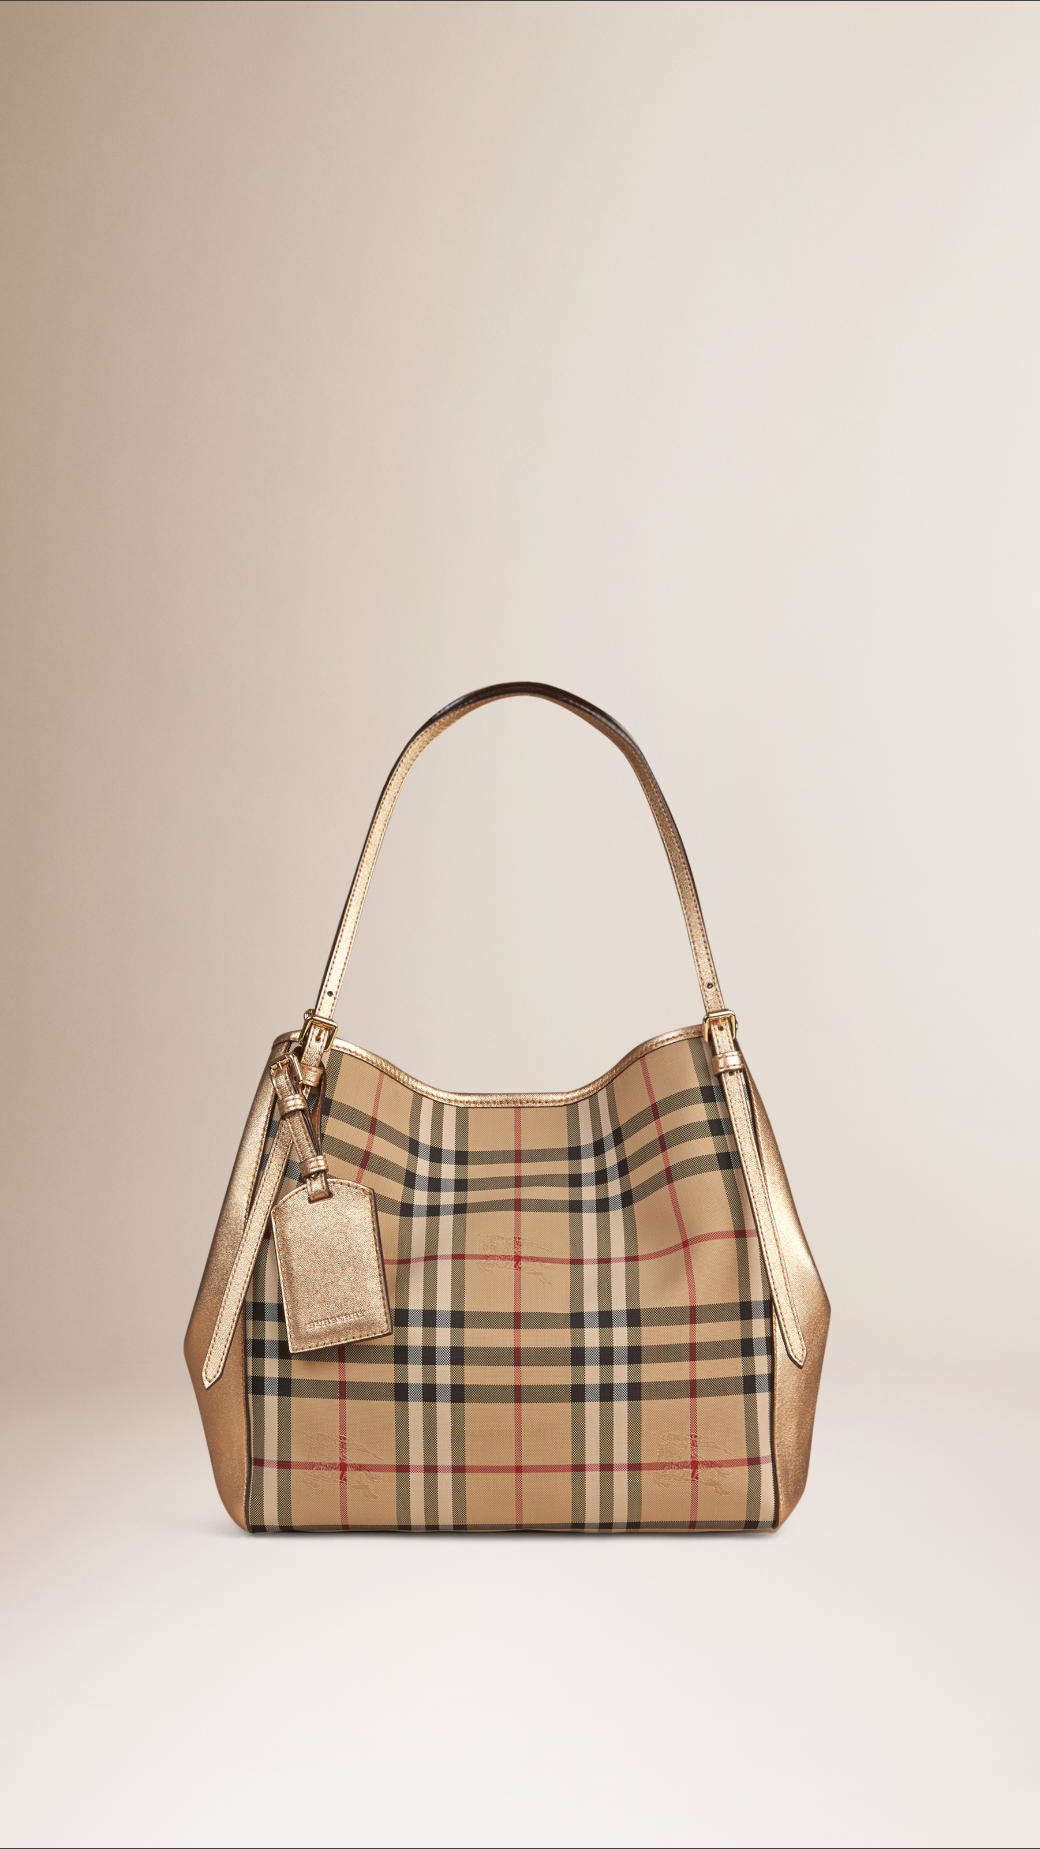 987bf7a0989c Lyst - Burberry The Small Canter In Horseferry Check in Metallic